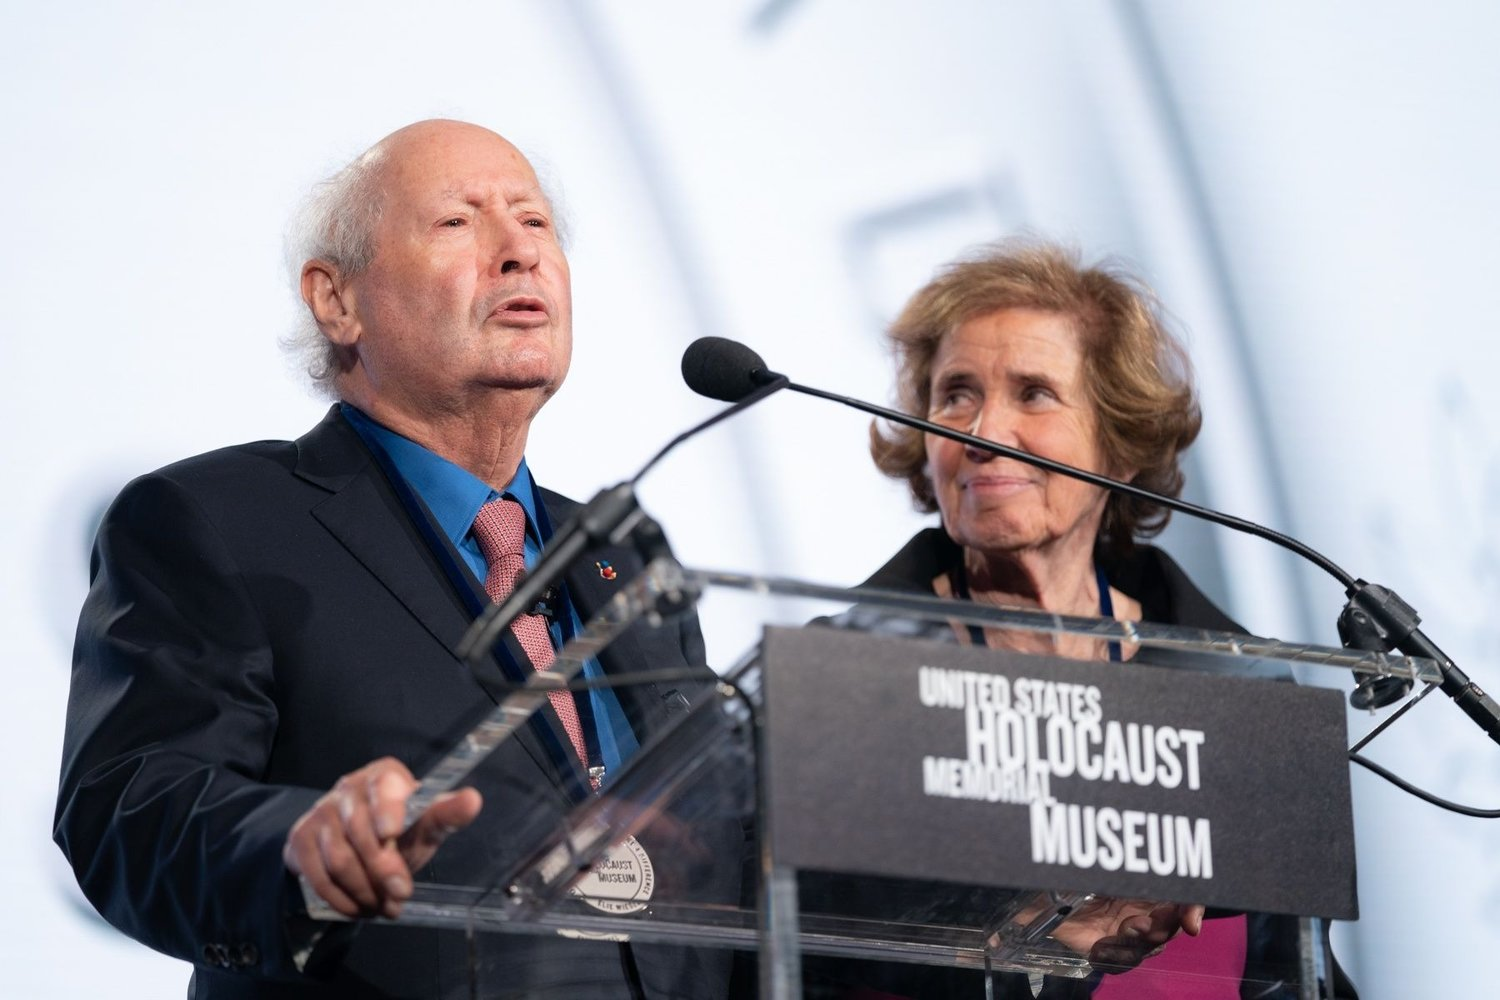 Beate and Serge Klarsfeld pose before receiving an award from the U.S. Holocaust Memorial Museum in Washington.